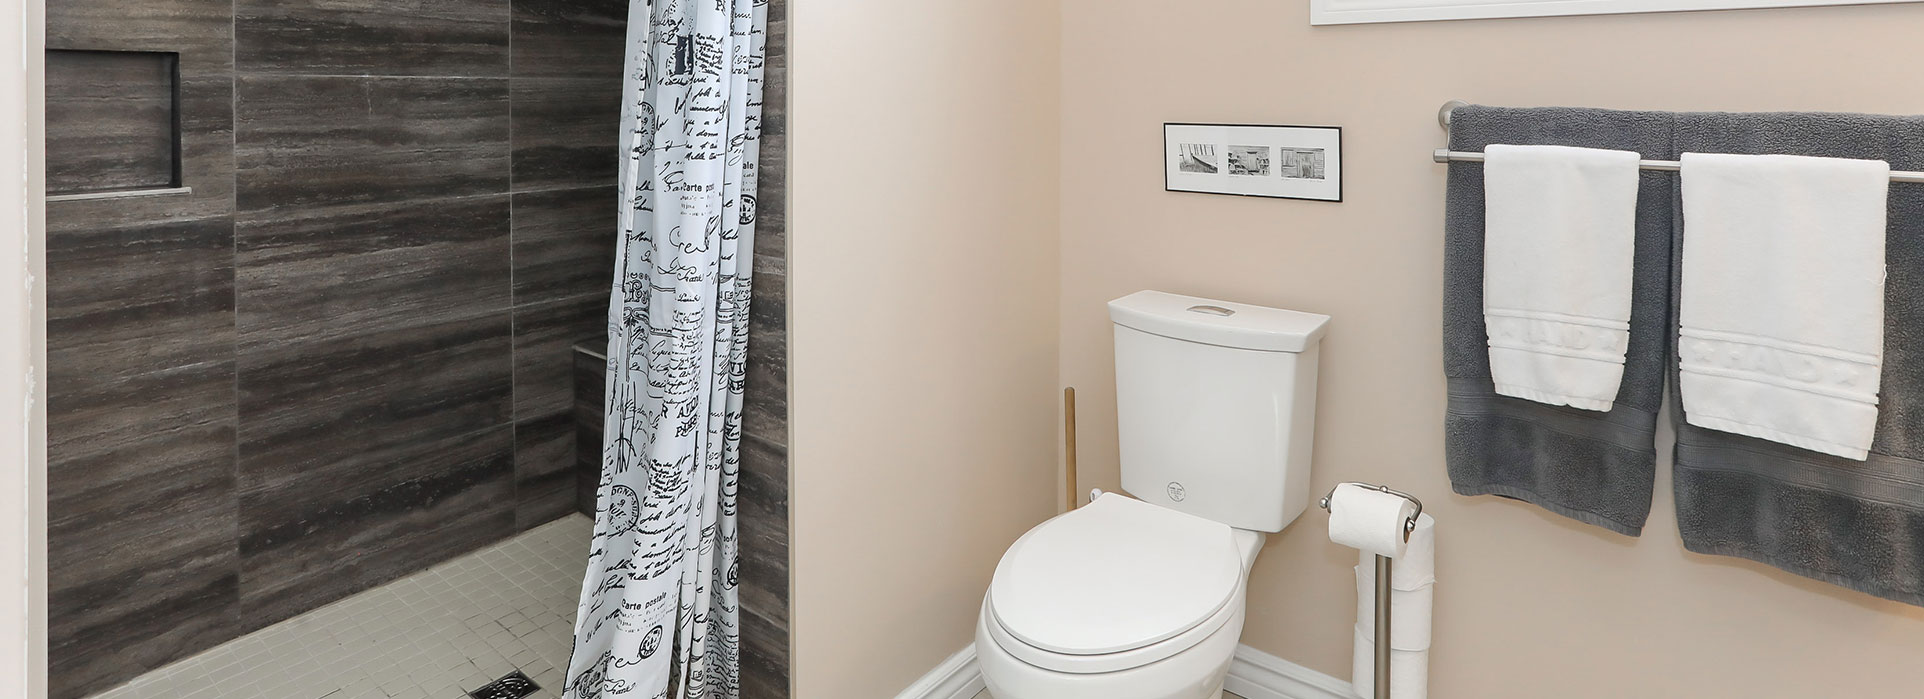 29 Merrington Avenue - Stand-Up Shower, and High efficiency toilet - Cripps Realty